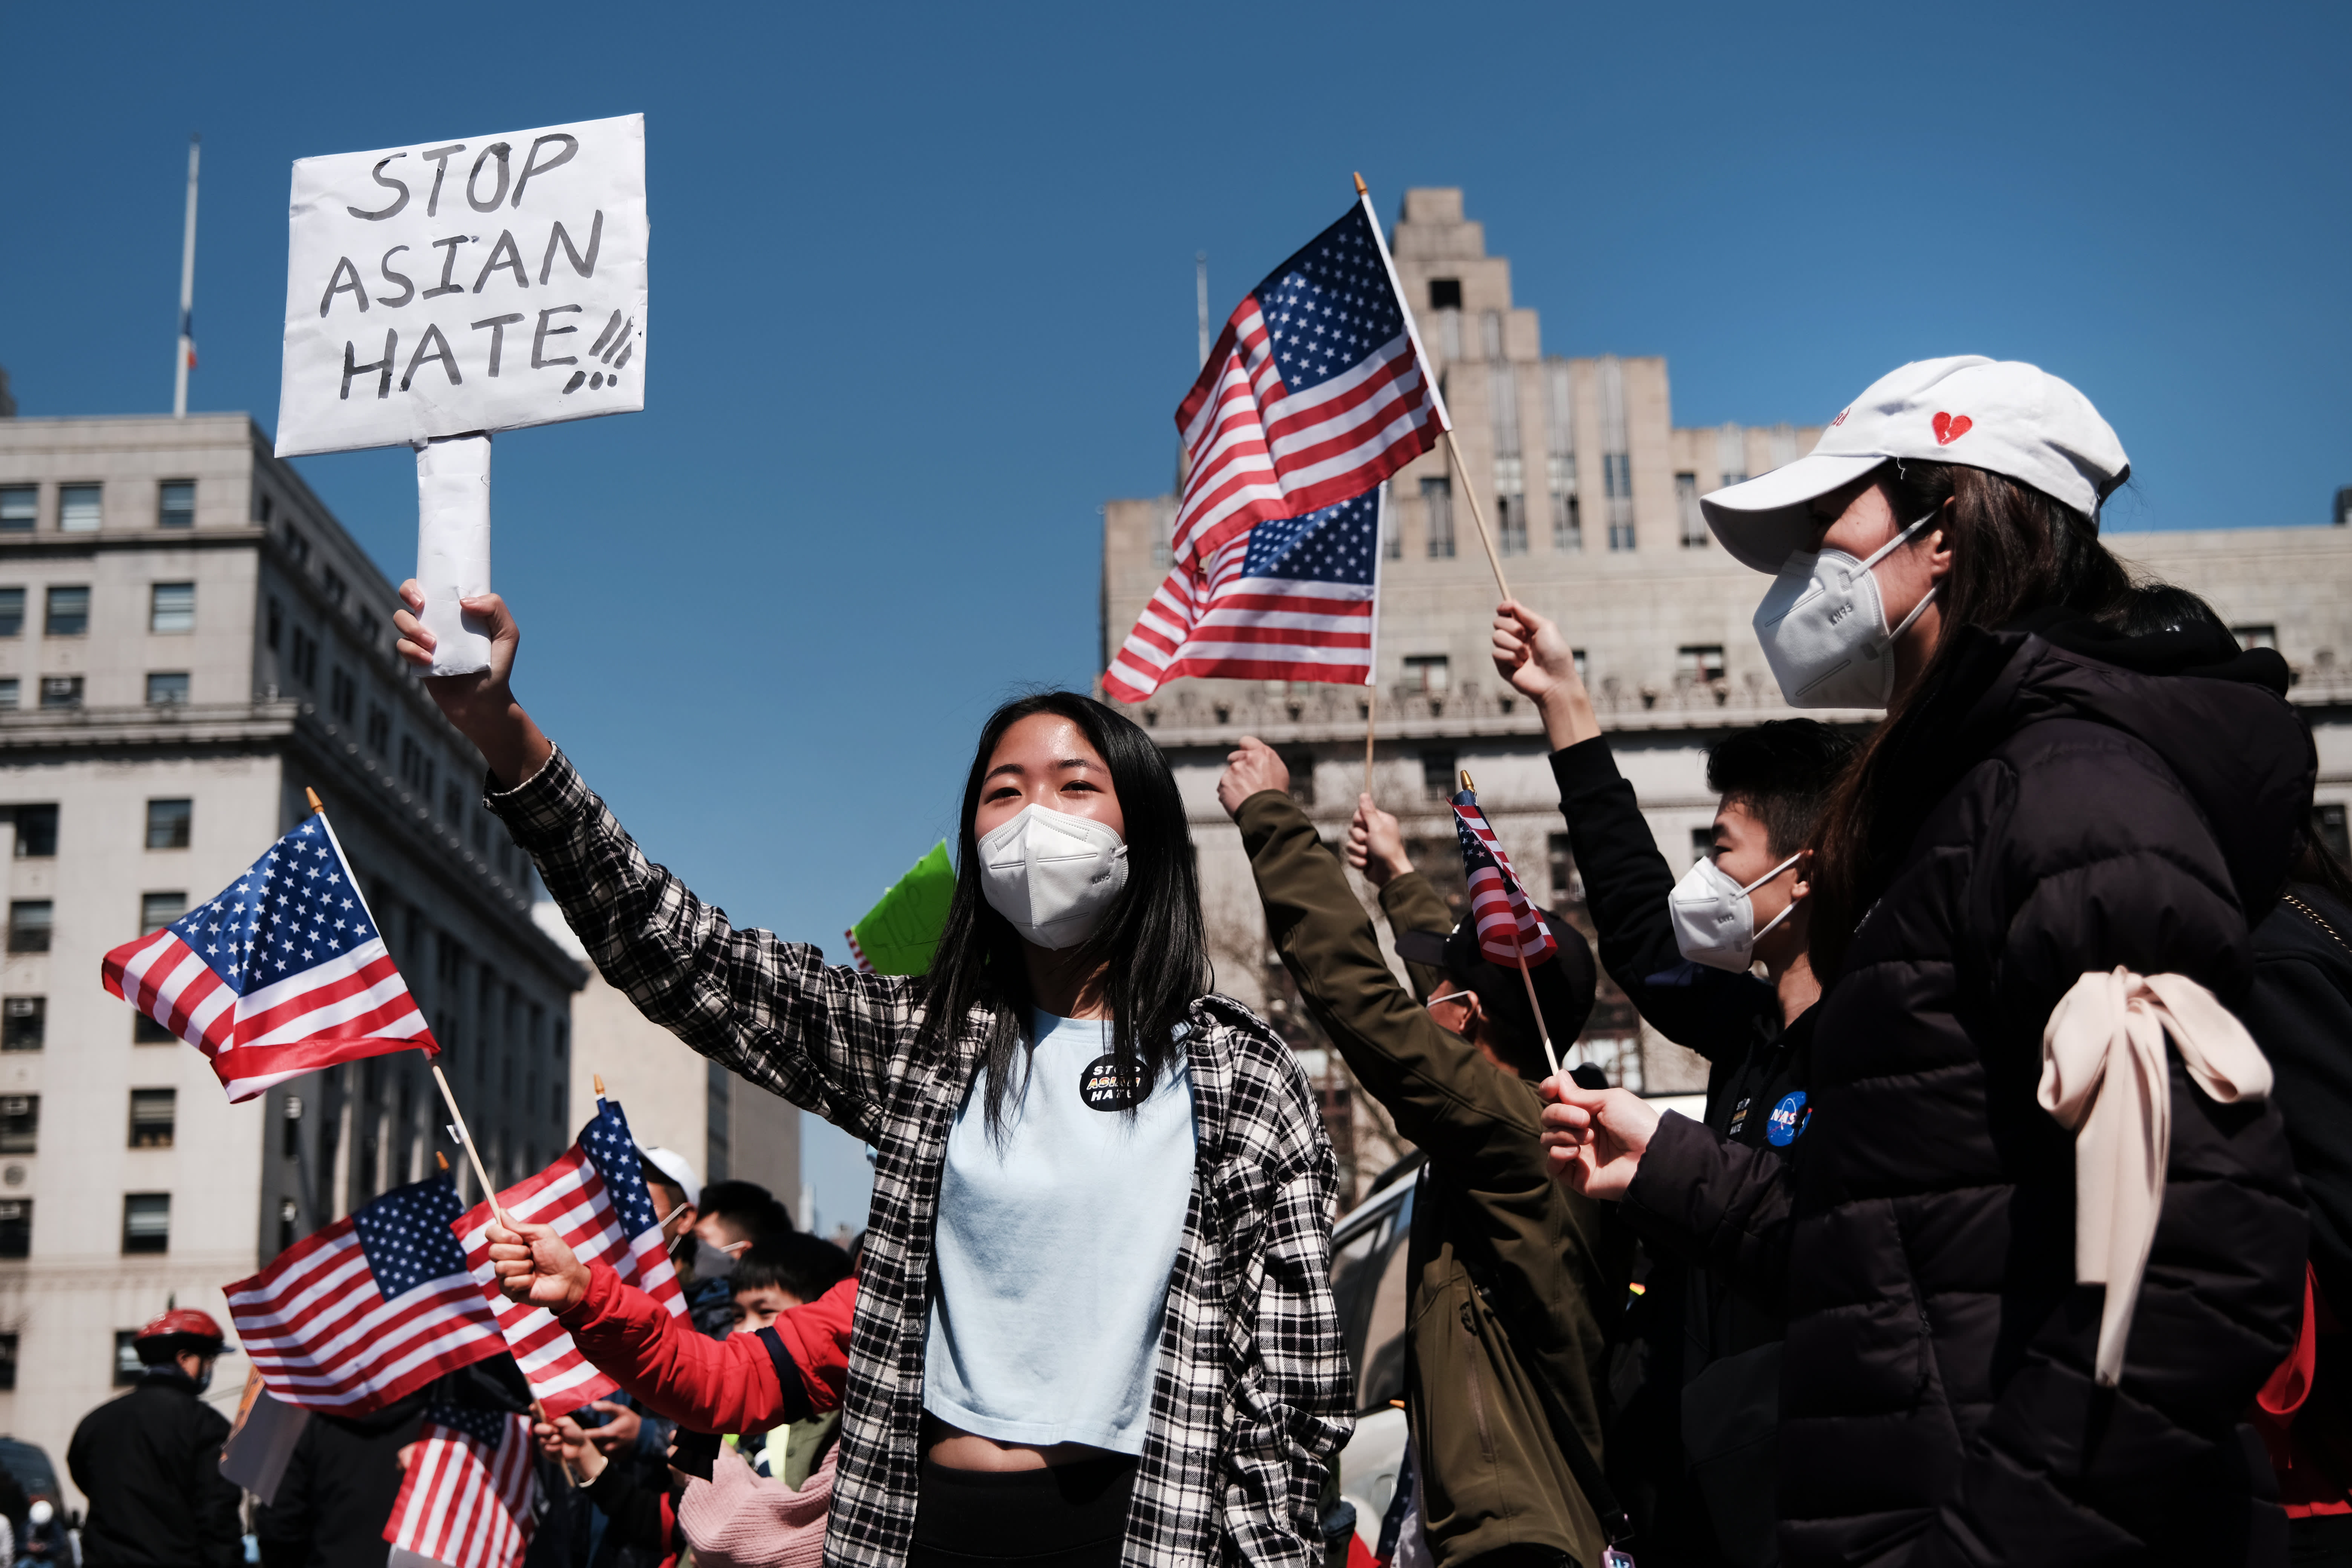 www.cnbc.com: 8 in 10 Asian Americans say violence against them is rising—yet support is lacking